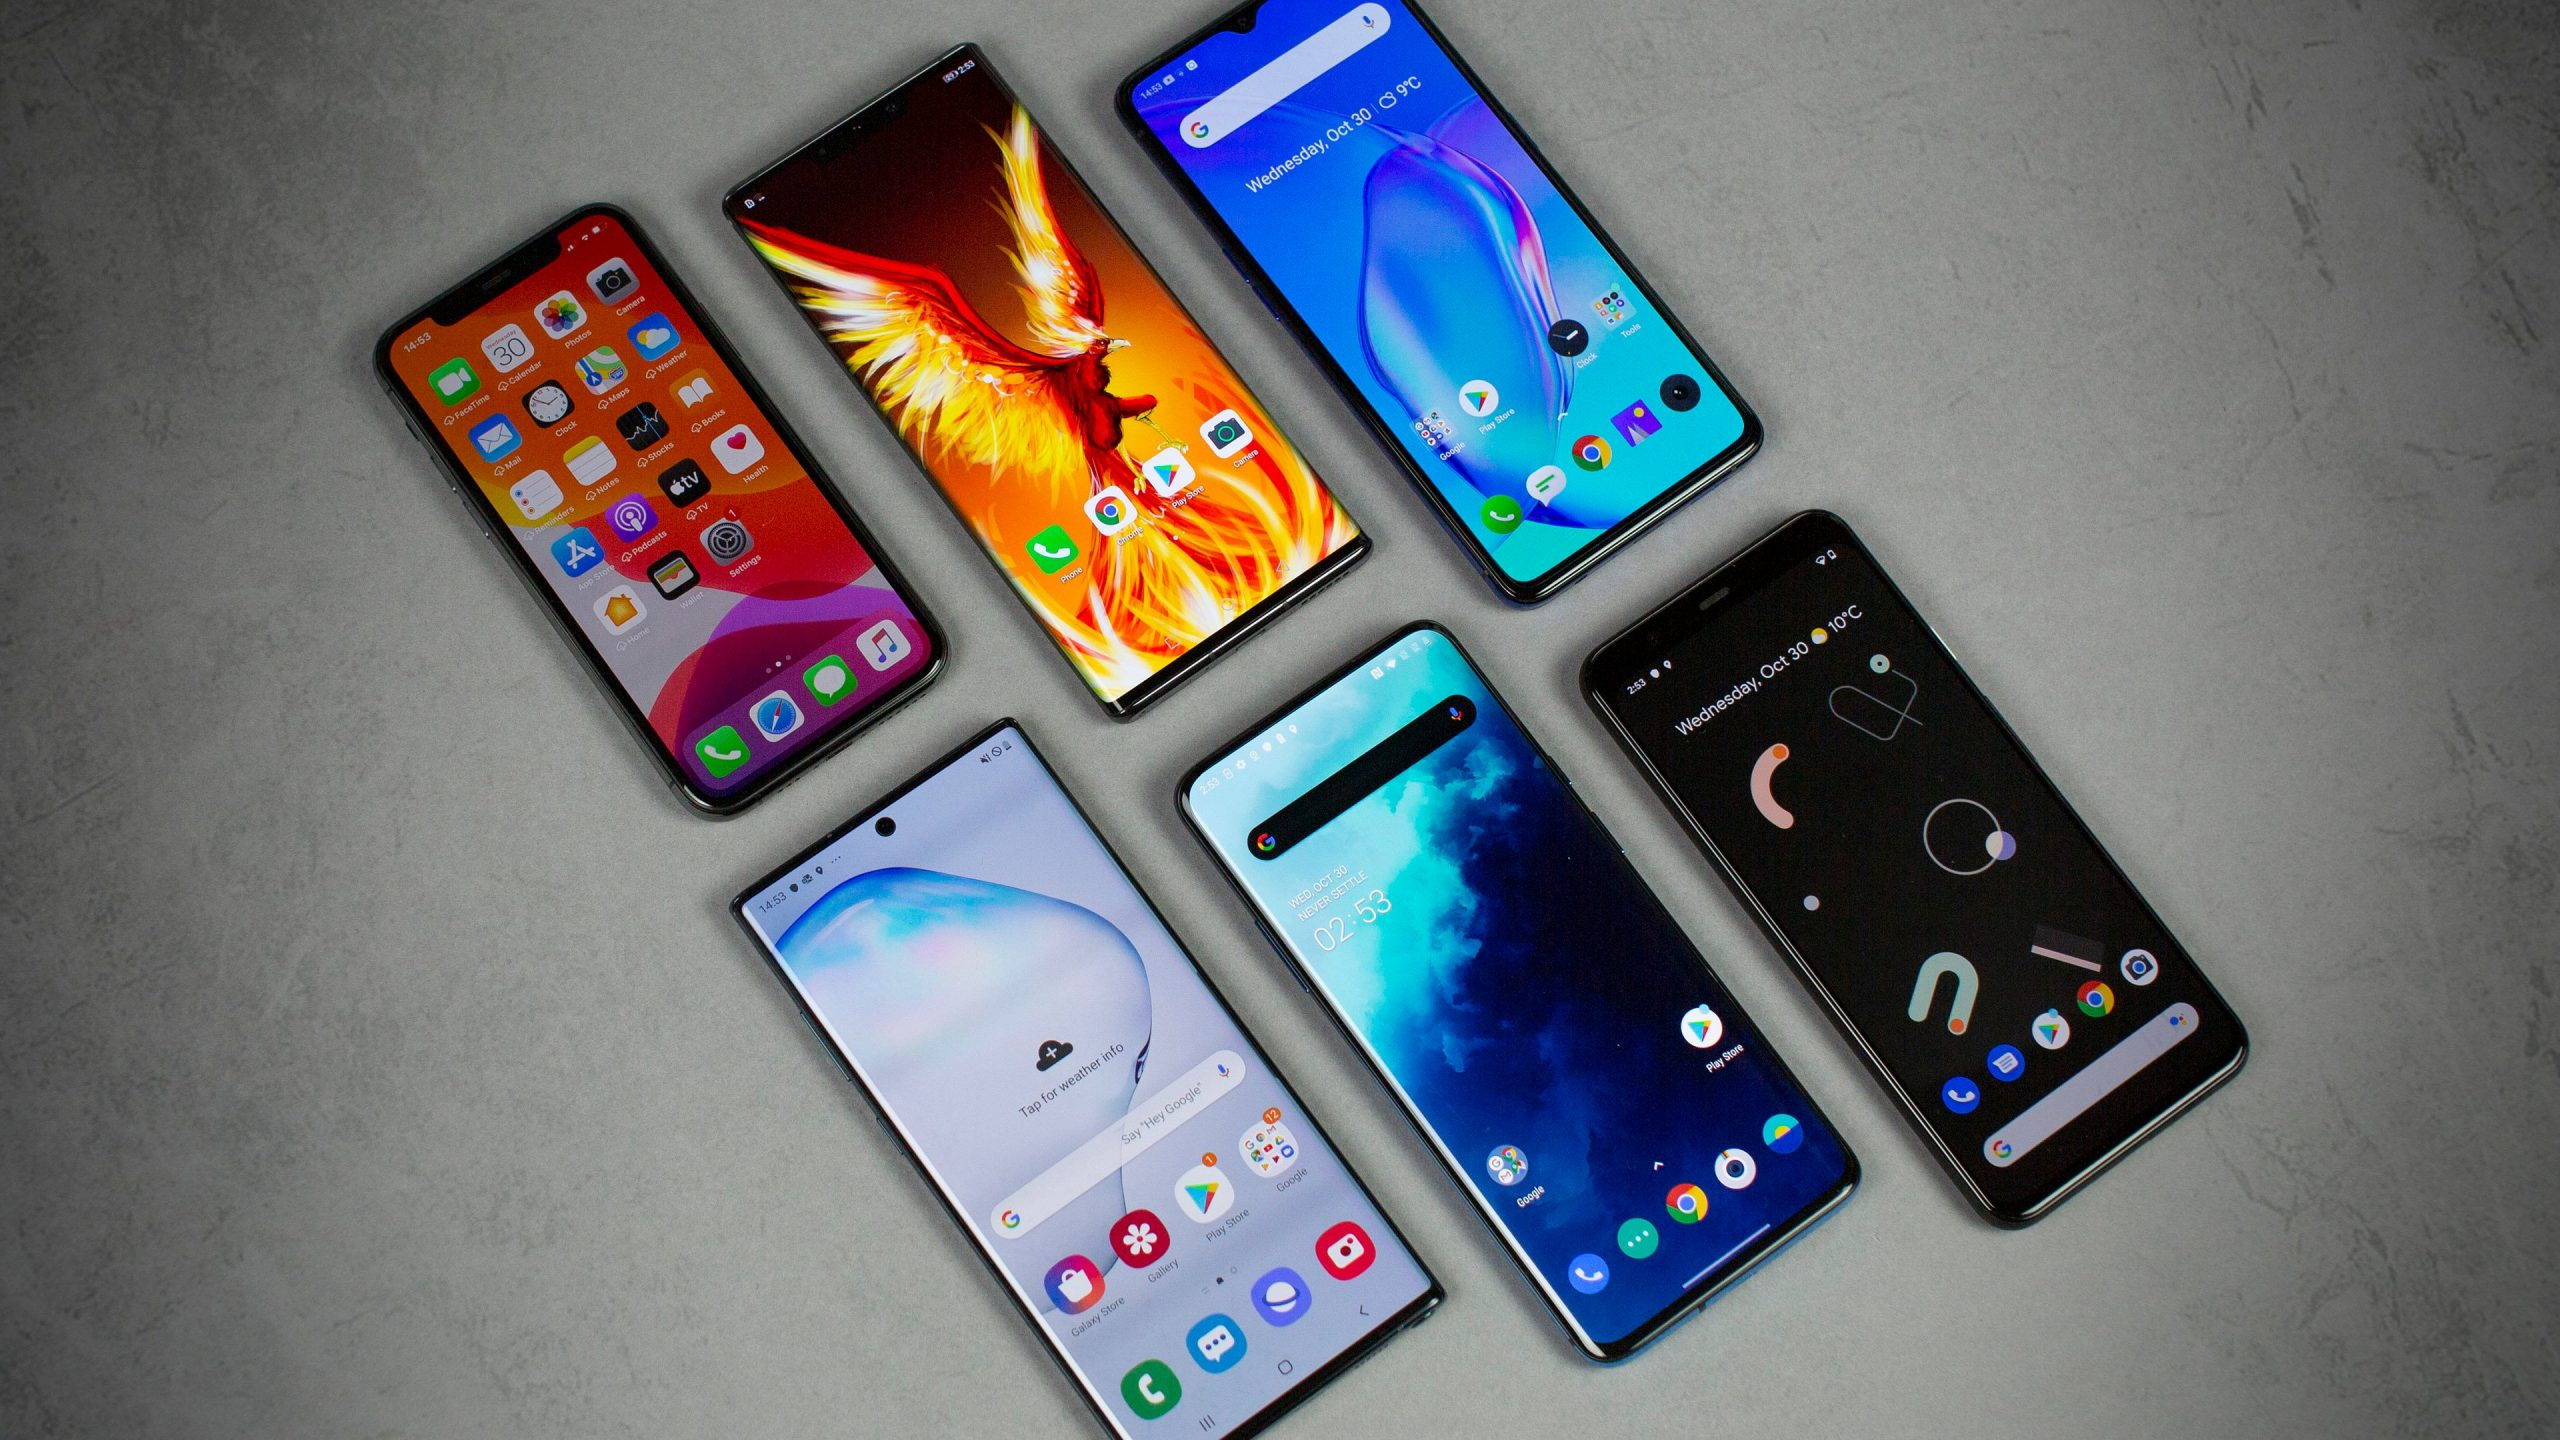 10 Things to Consider Before Purchasing a Smartphone